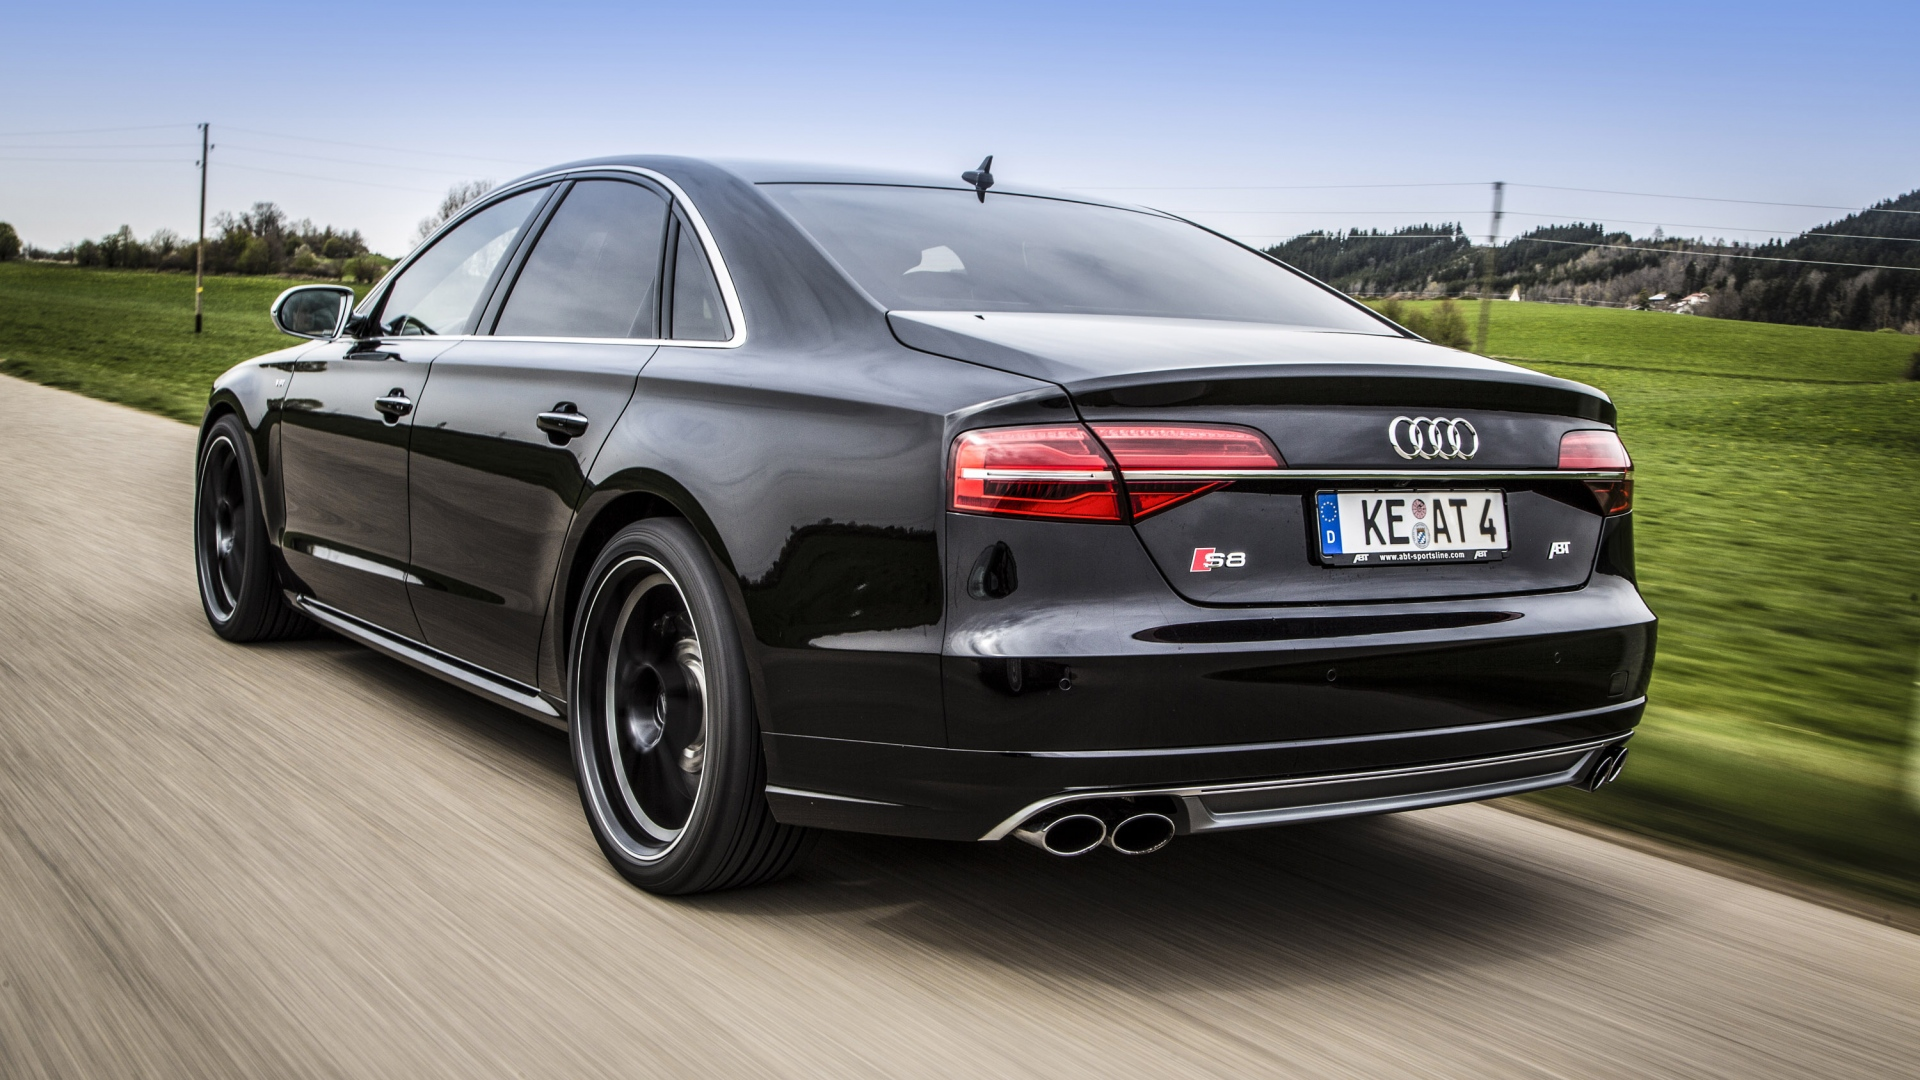 Audi S8 Wallpapers 072 Mb   4USkY 1920x1080